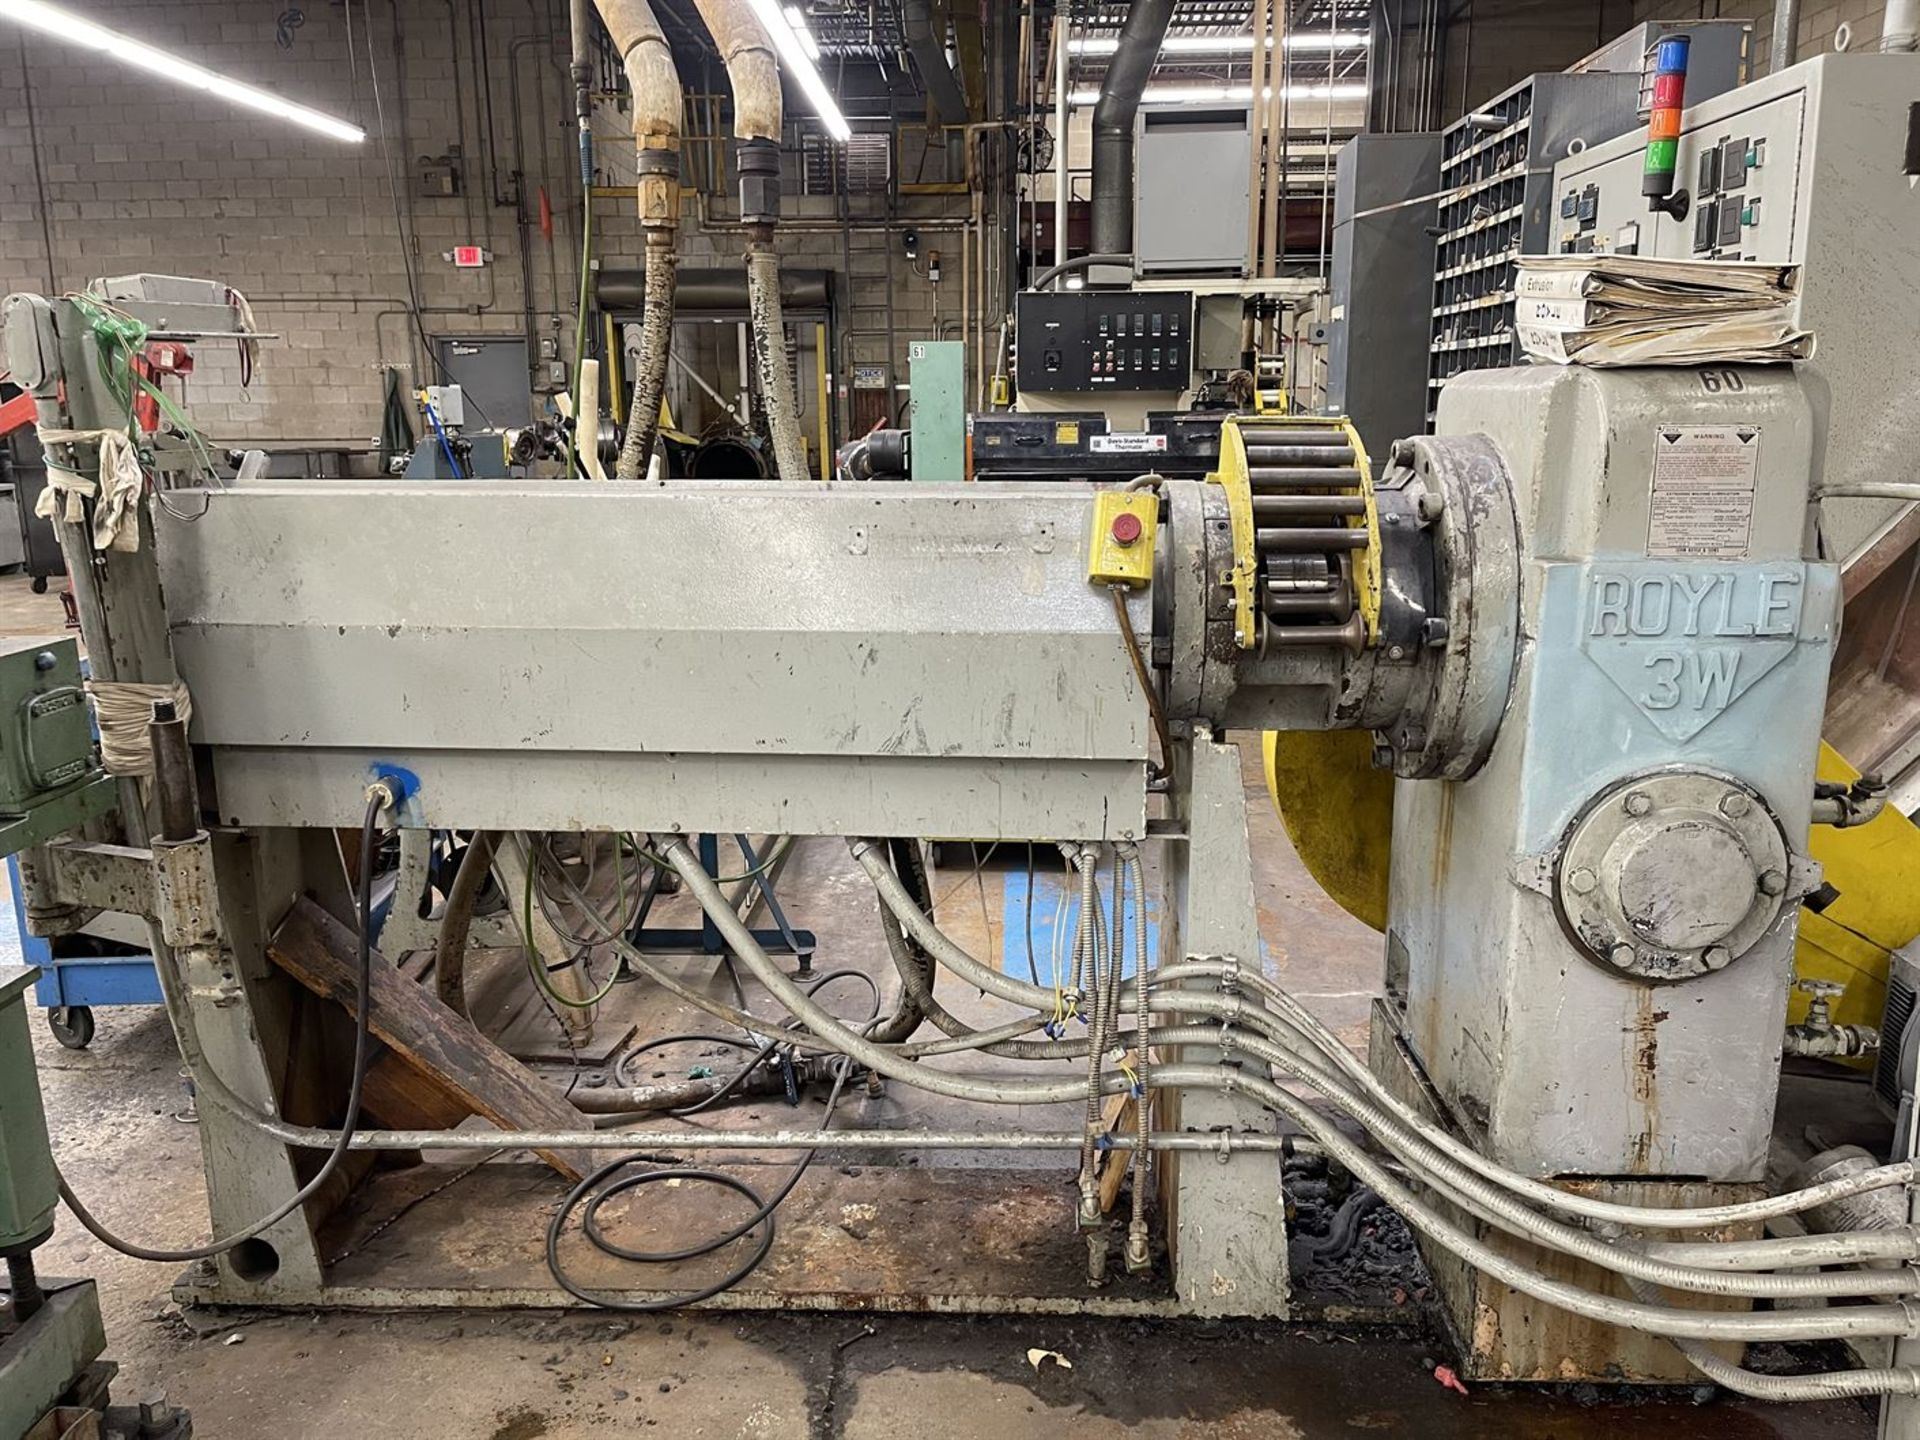 "ROYLE 3W-3-1/2"" 20:1 L/D Extruder, s/n 5769, 75 HP - Image 2 of 6"